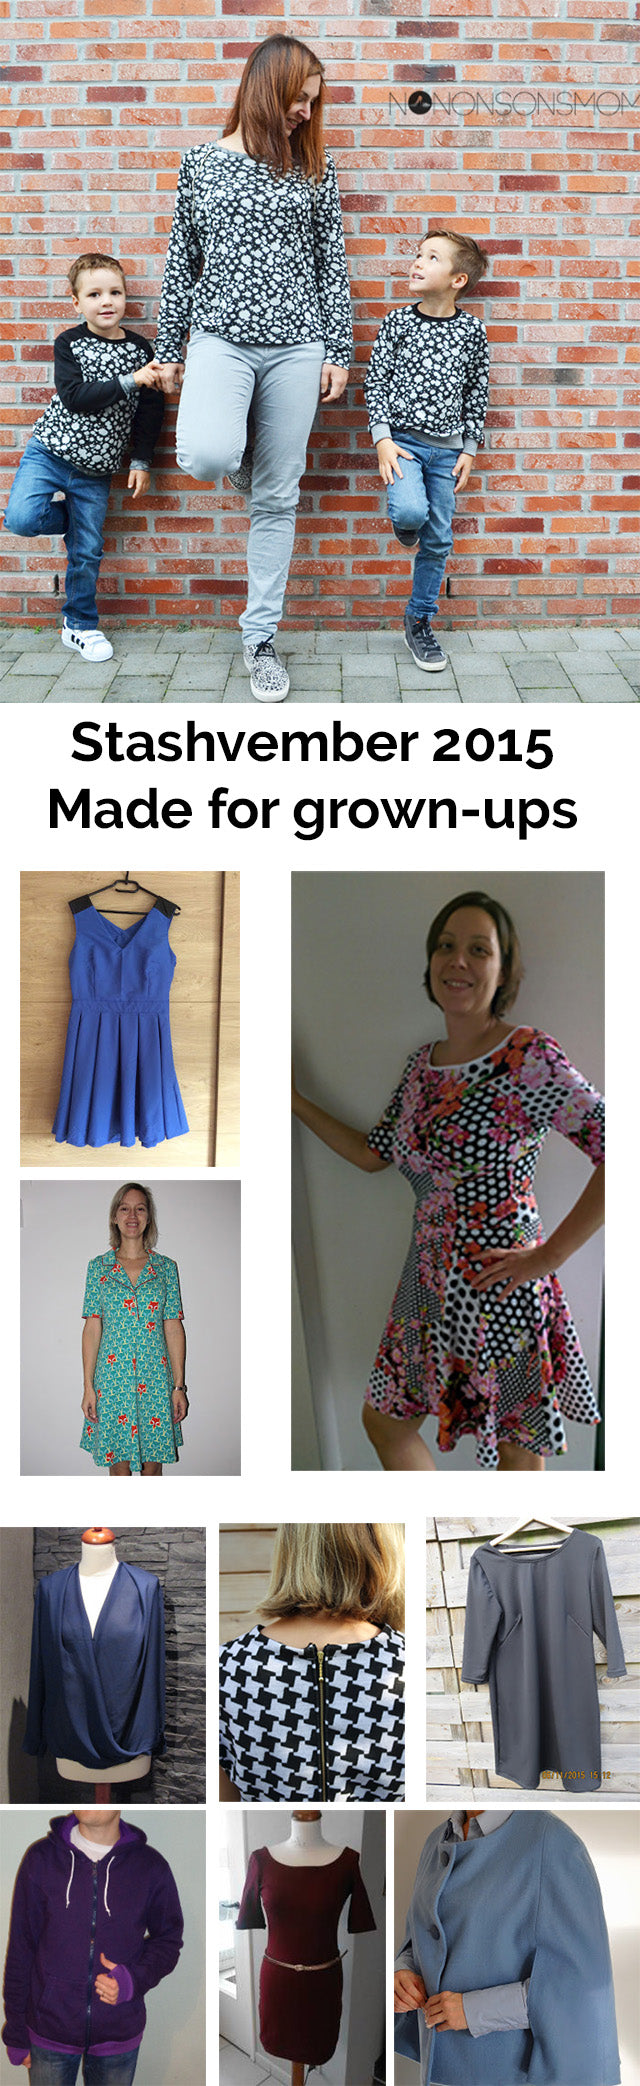 stashvember 2015 adult collage